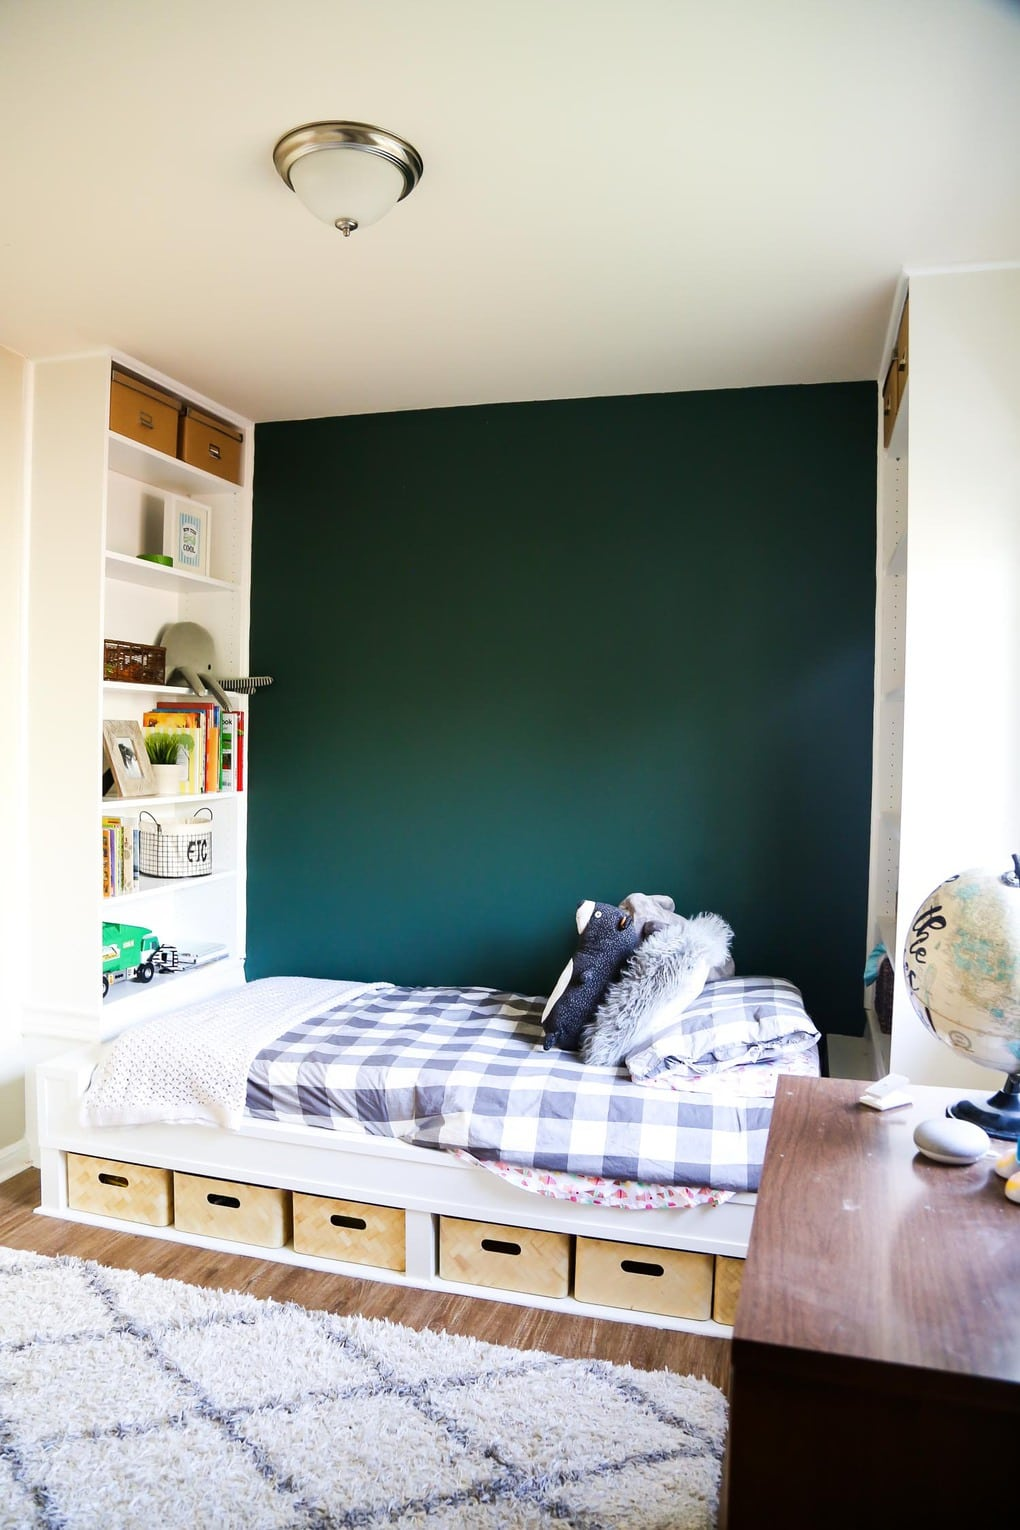 Easy Diy Bed With Built In Shelves Using Ikea Bookcases